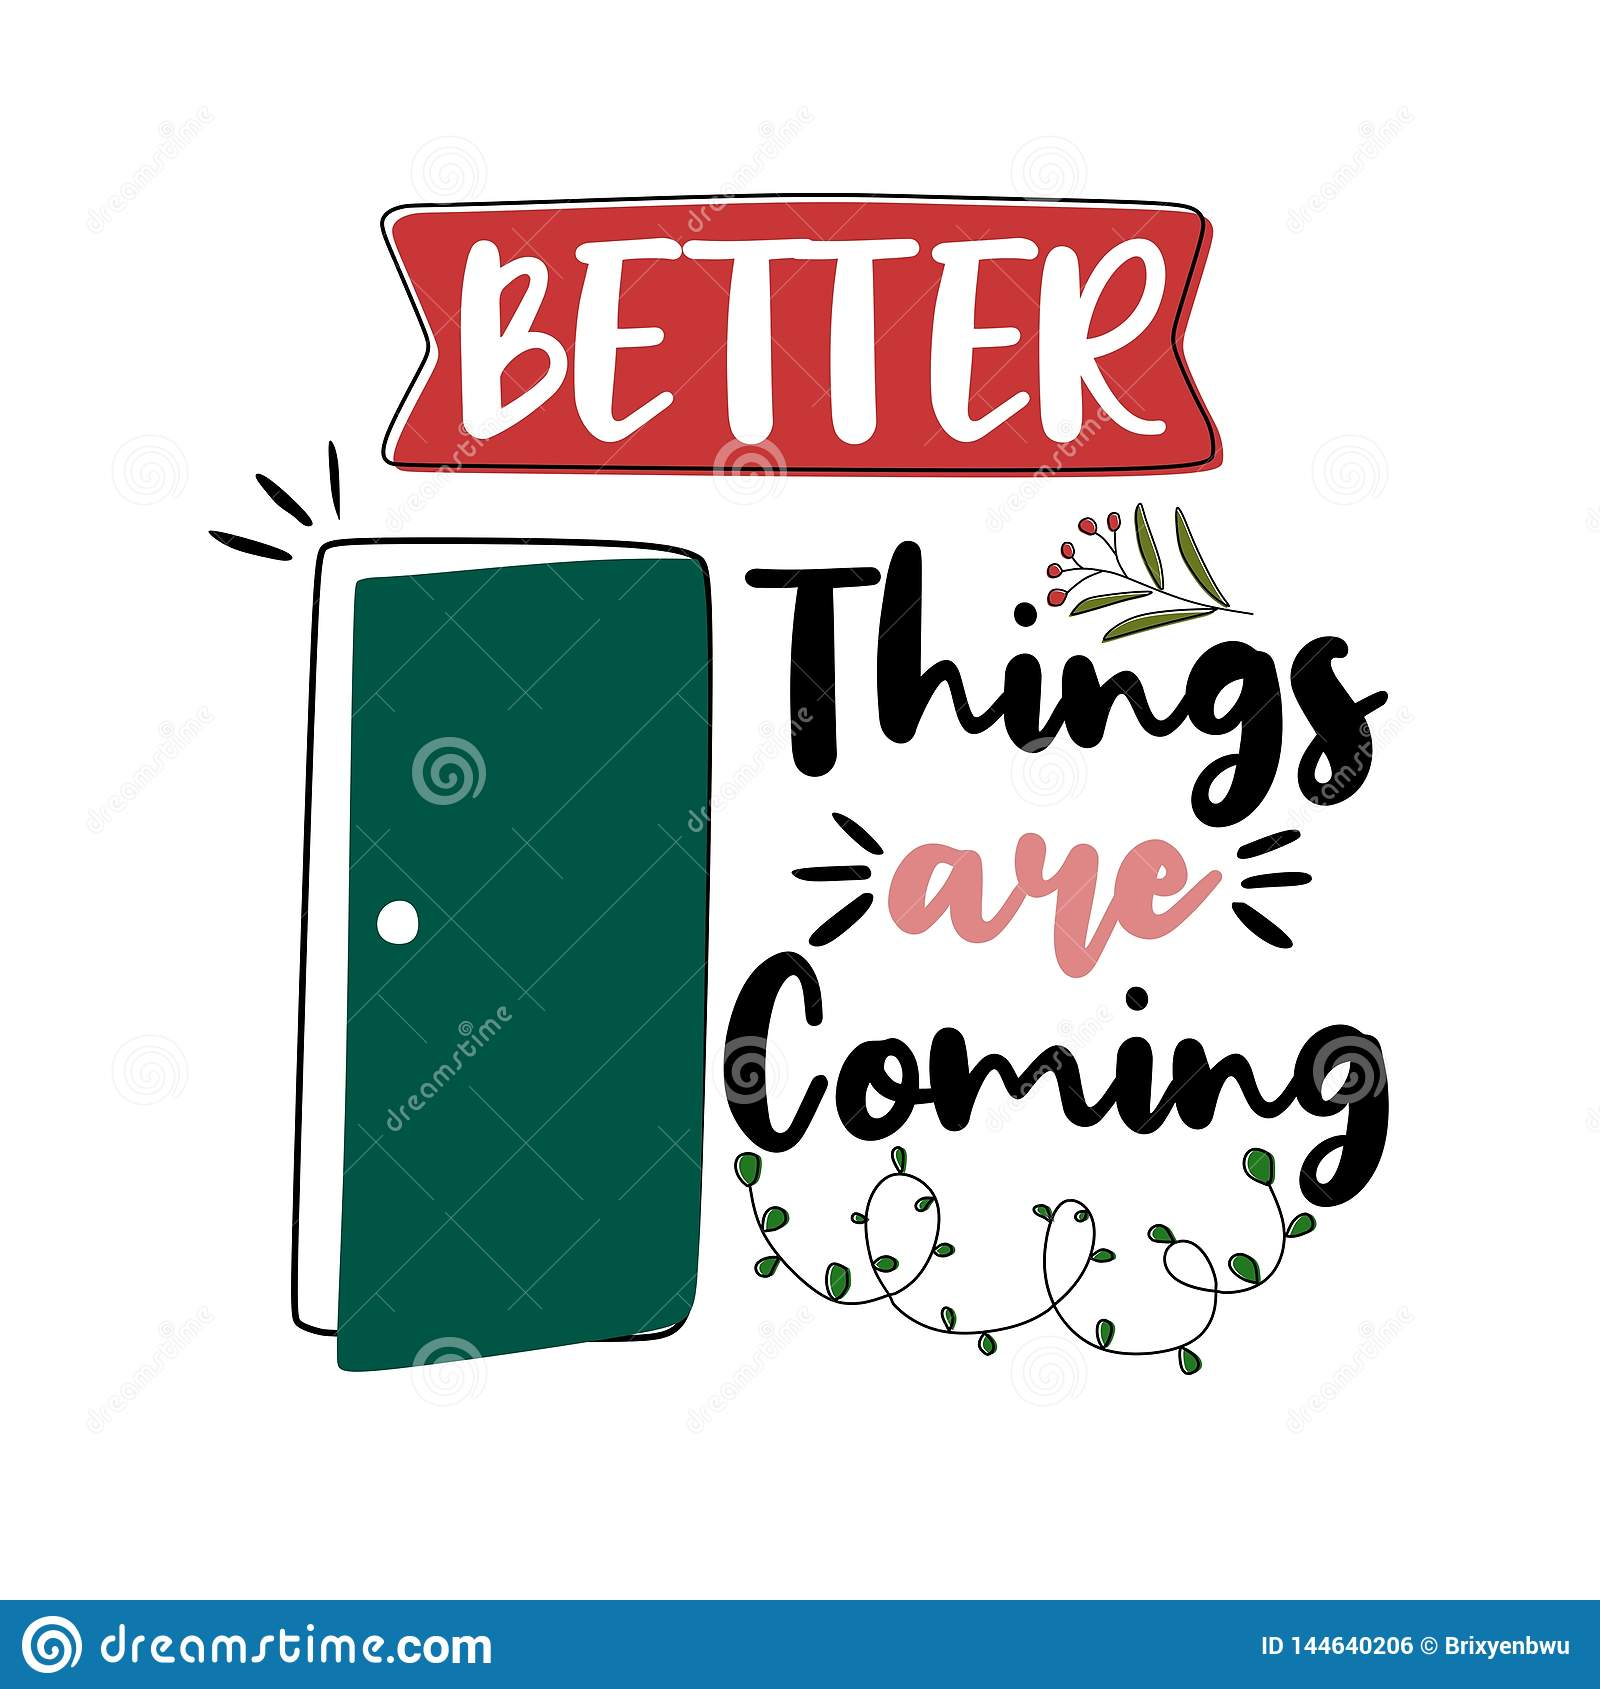 Better Things Are Coming Premium Motivational Quote Typography